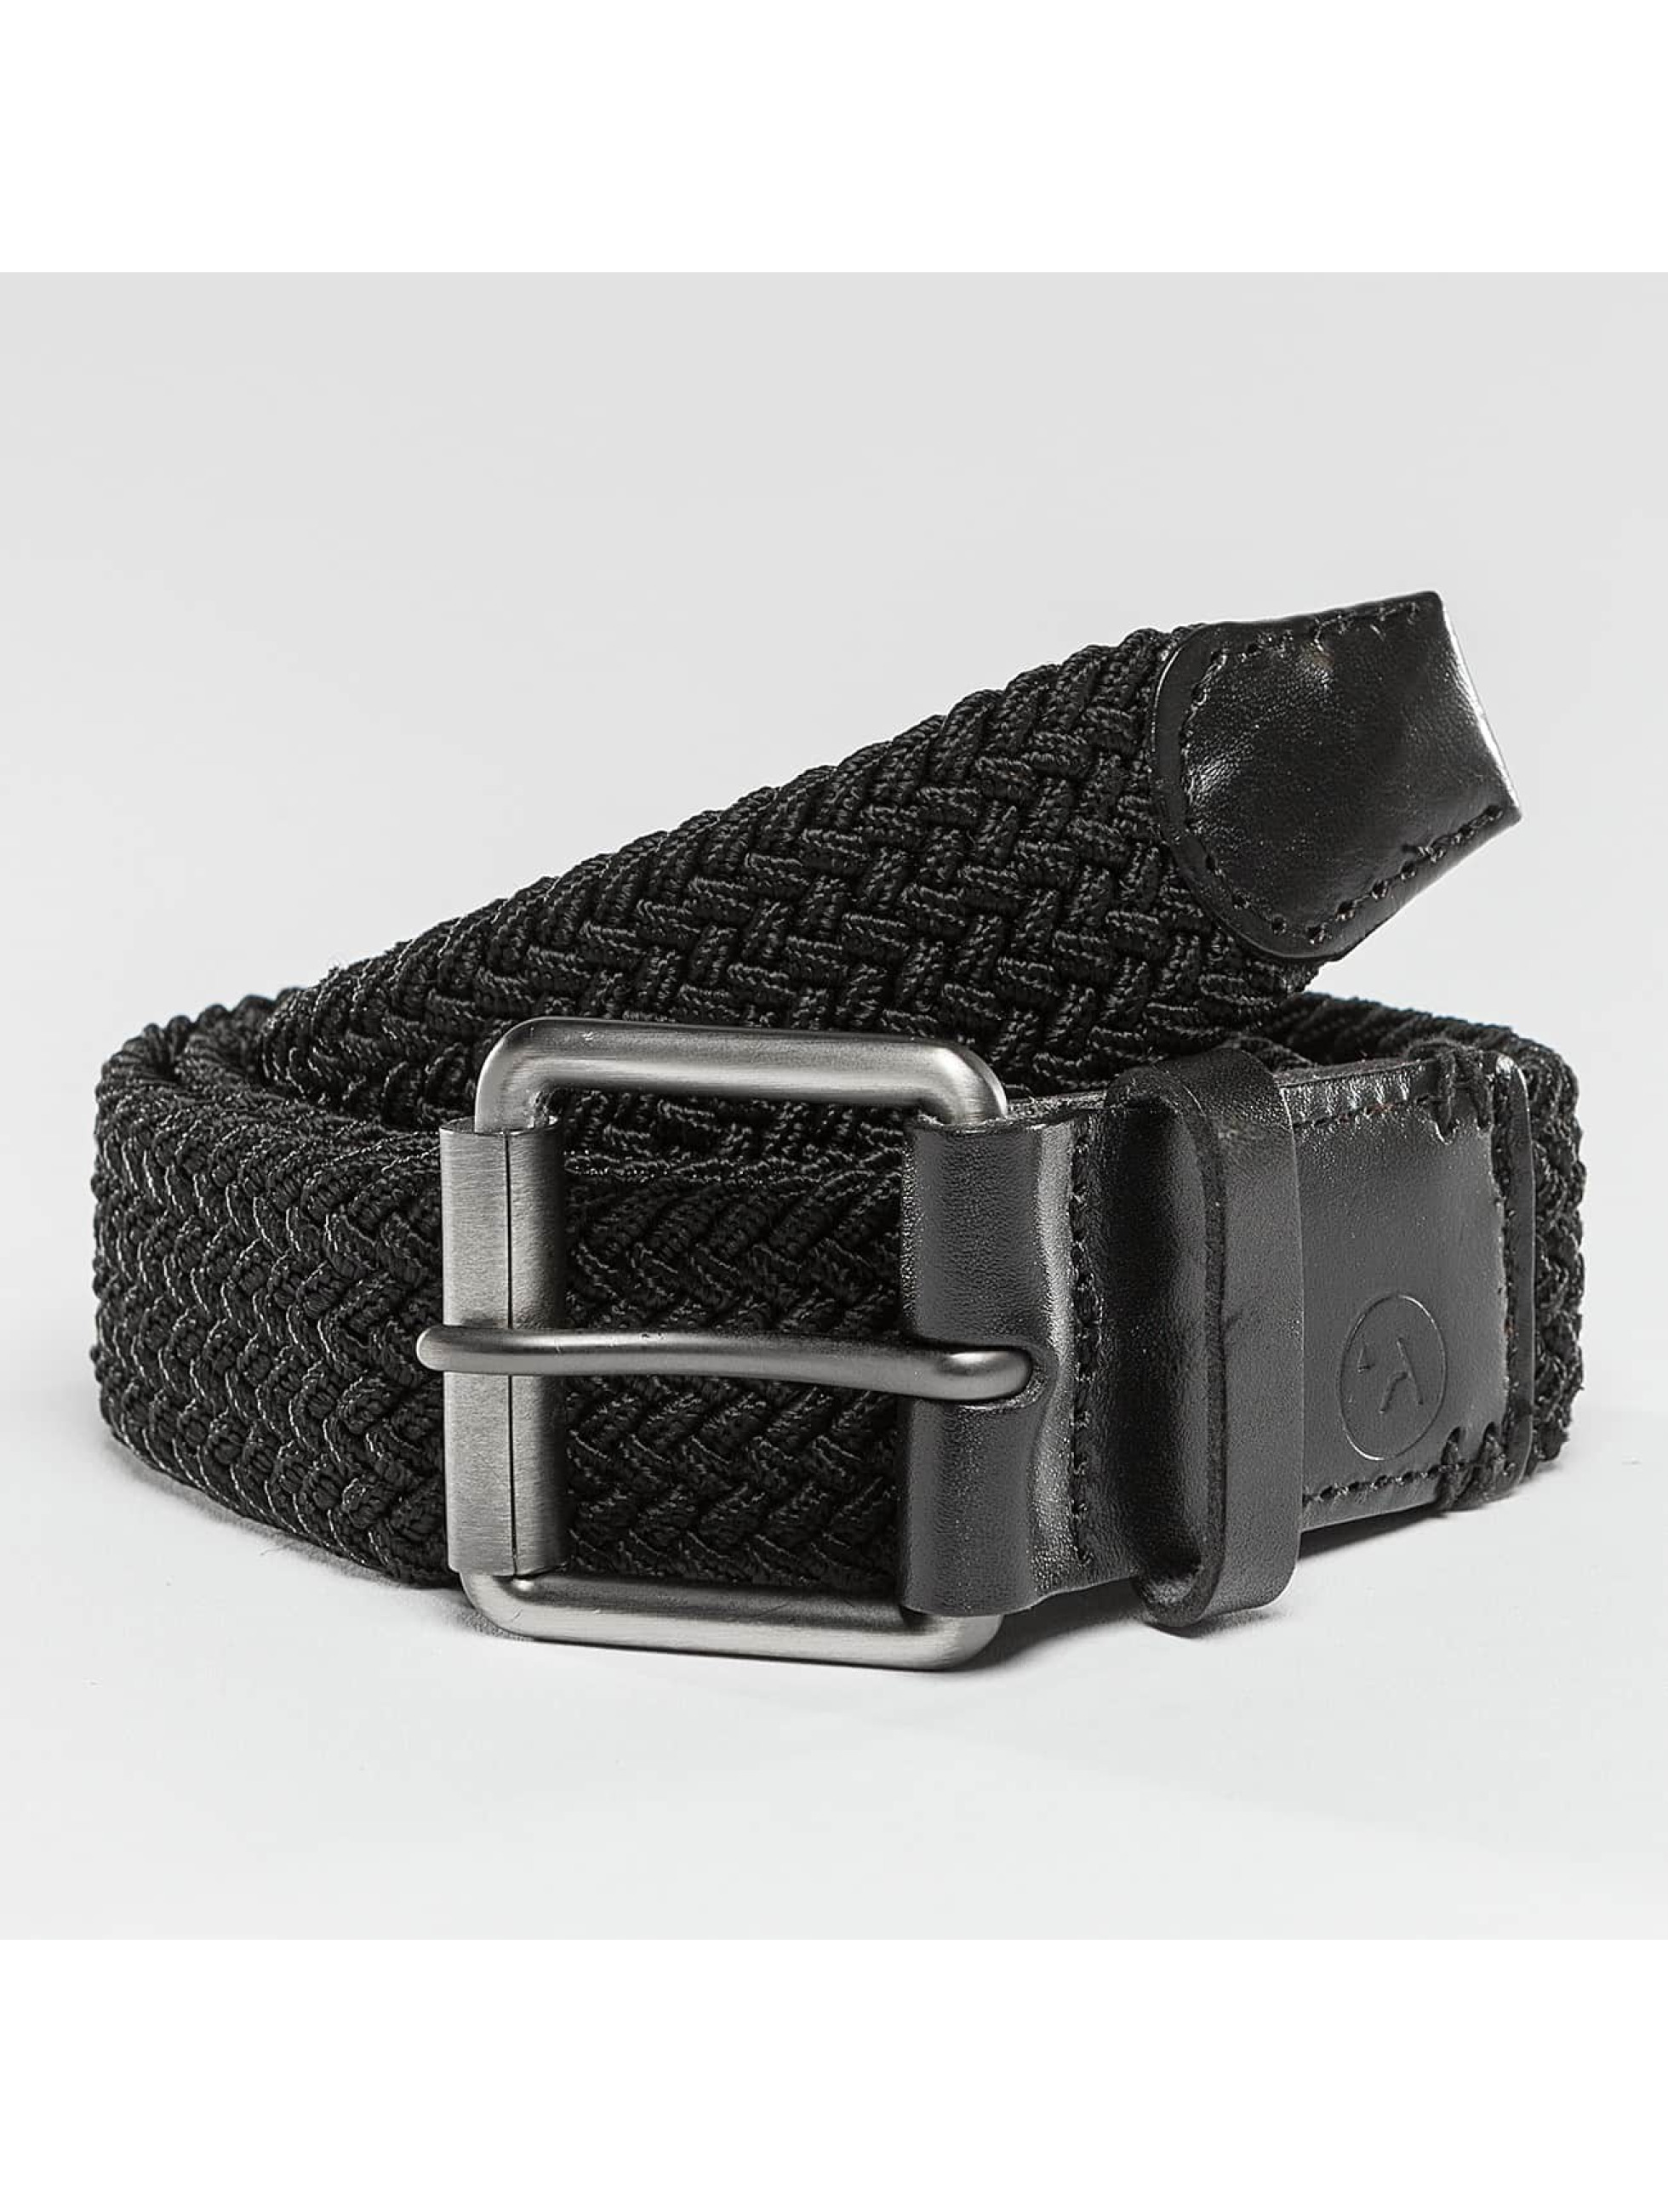 ARCADE Belt The Hudson black